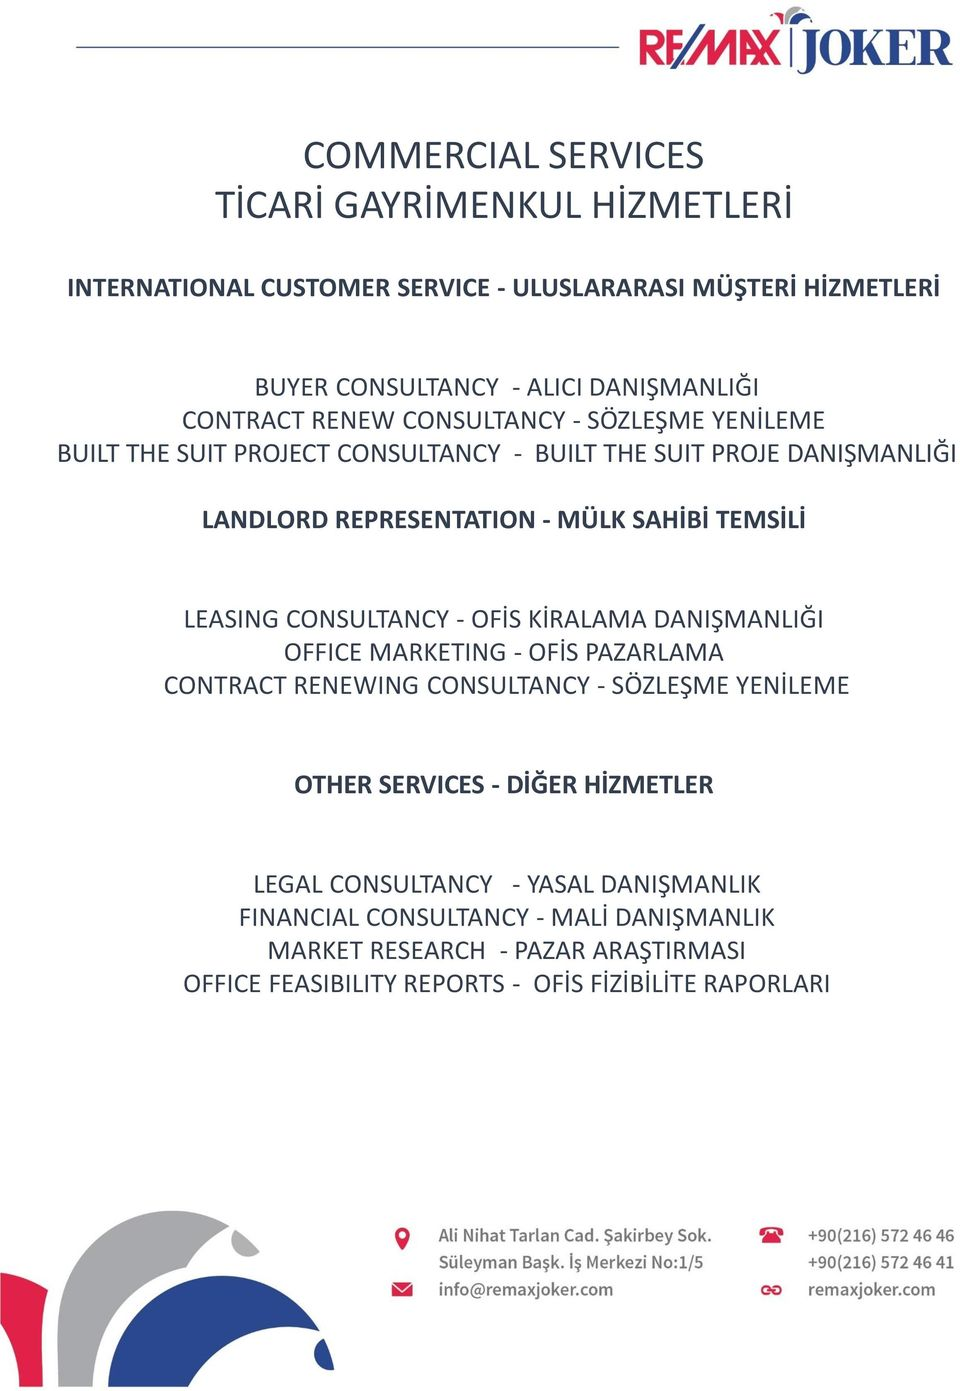 CONSULTANCY - OFİS KİRALAMA DANIŞMANLIĞI OFFICE MARKETING - OFİS PAZARLAMA CONTRACT RENEWING CONSULTANCY - SÖZLEŞME YENİLEME OTHER SERVICES - DİĞER HİZMETLER LEGAL